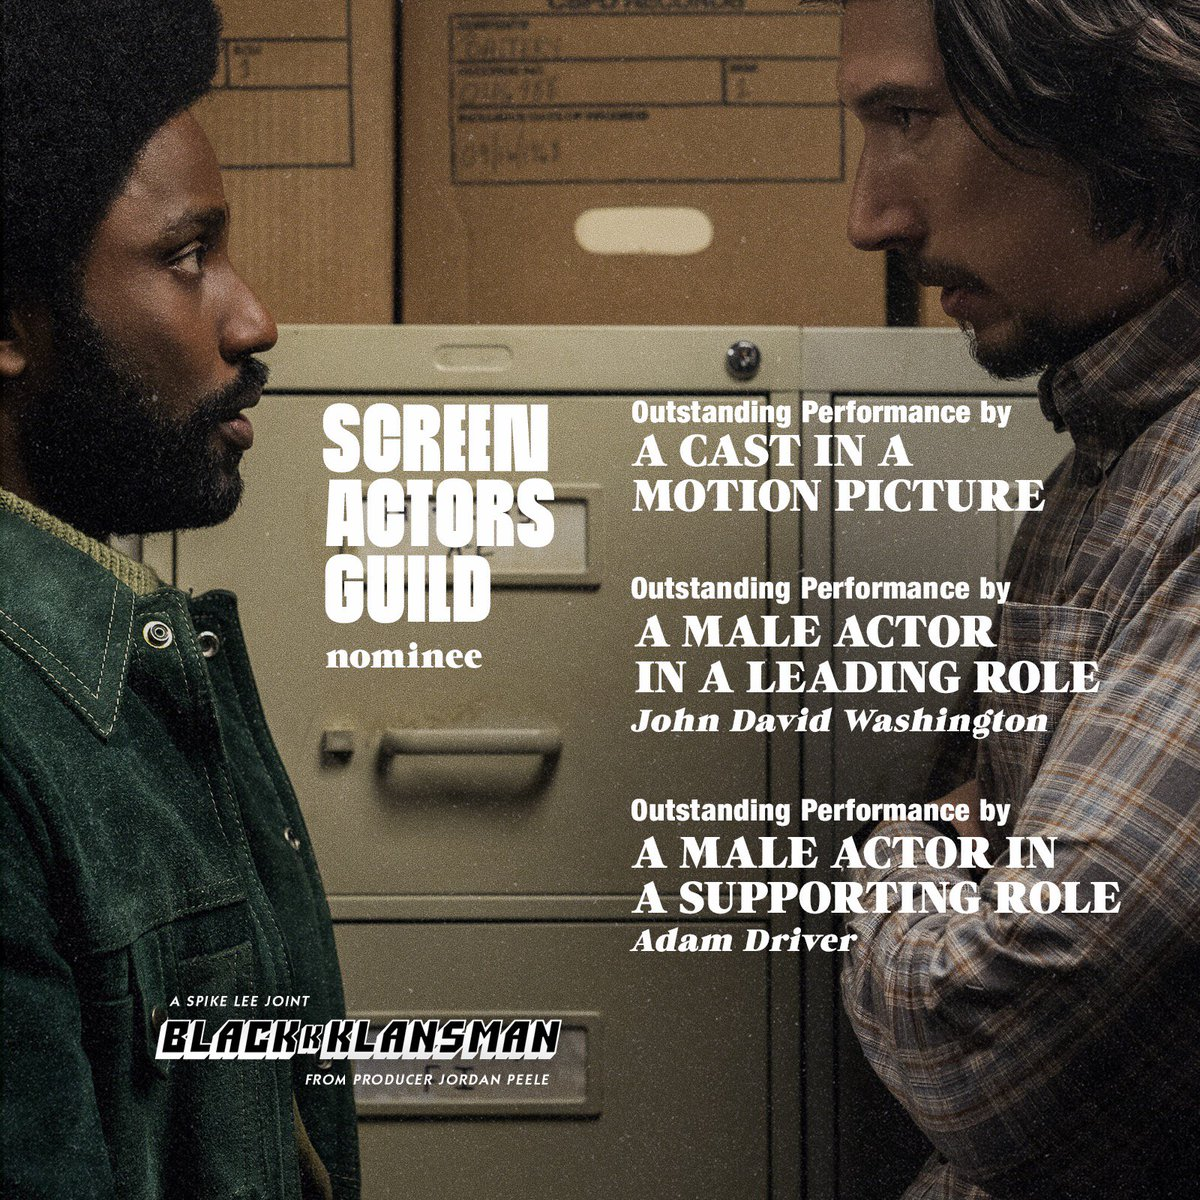 Congrats to John David Washington, Adam Driver and the entire cast of #BlacKkKlansman on their #SAGAwards nominations! <br>http://pic.twitter.com/mcgaeq9tvB